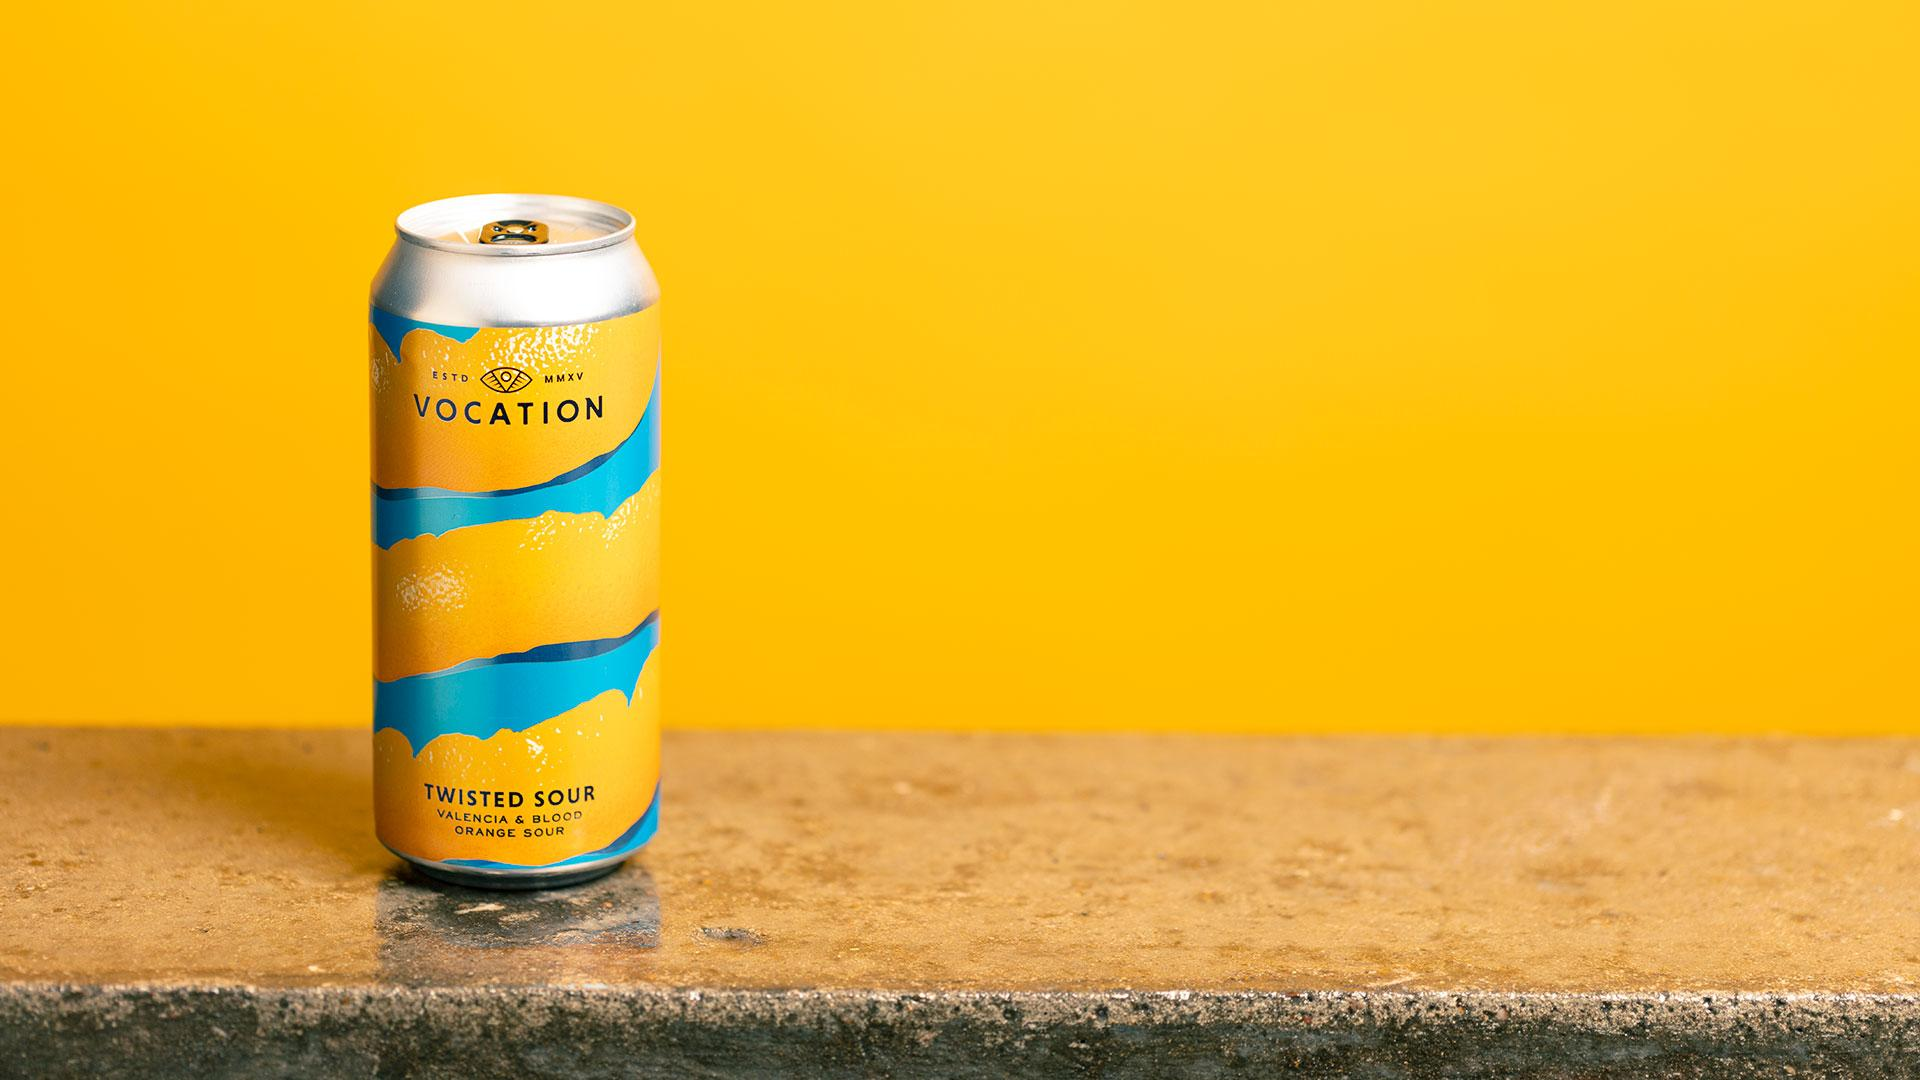 Tesco craft beer: Vocation Twisted Sour